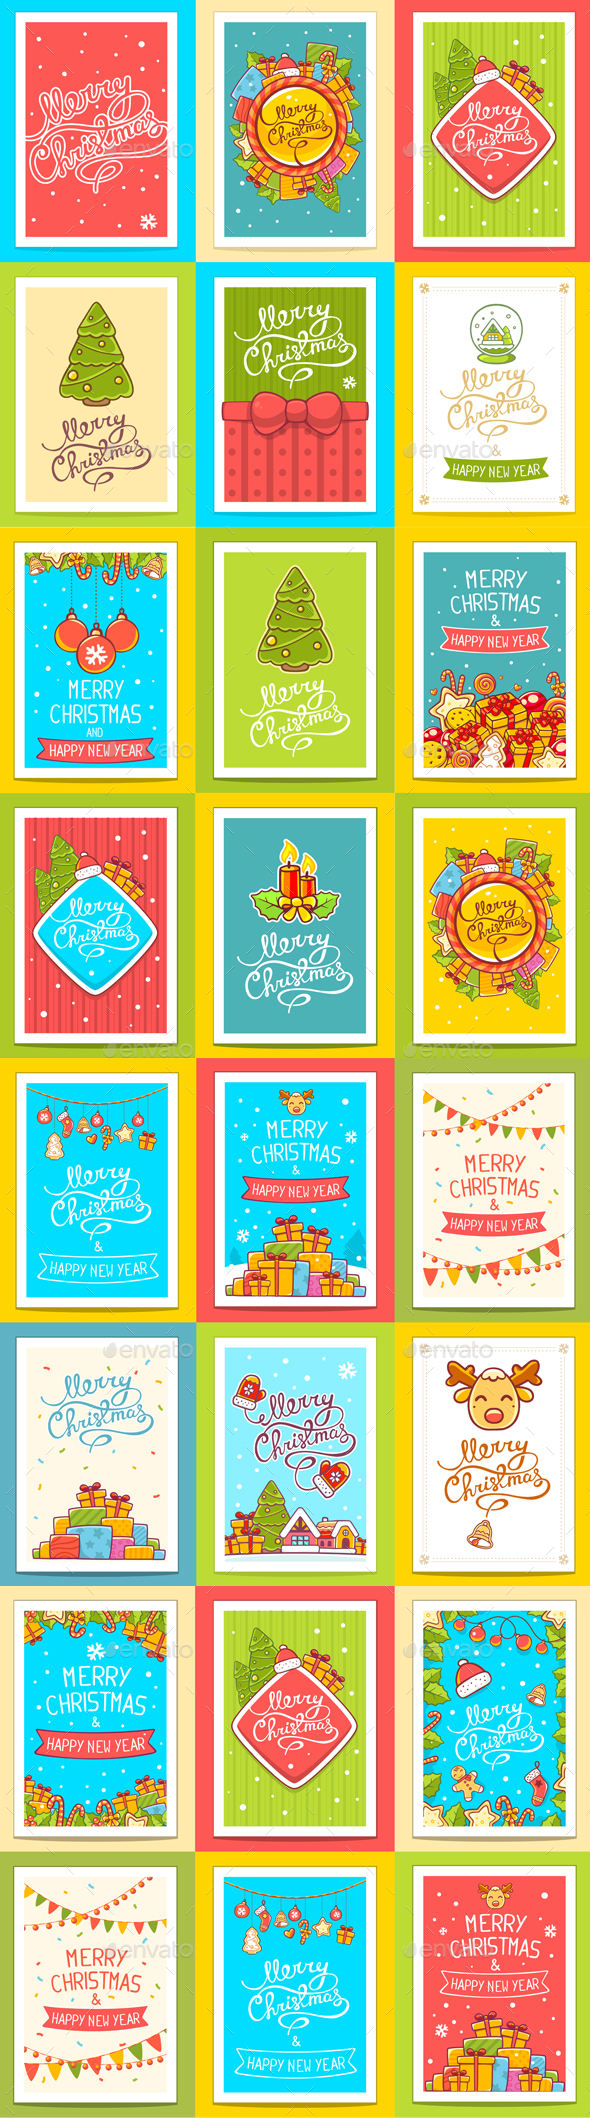 Big Collection of Christmas Cards